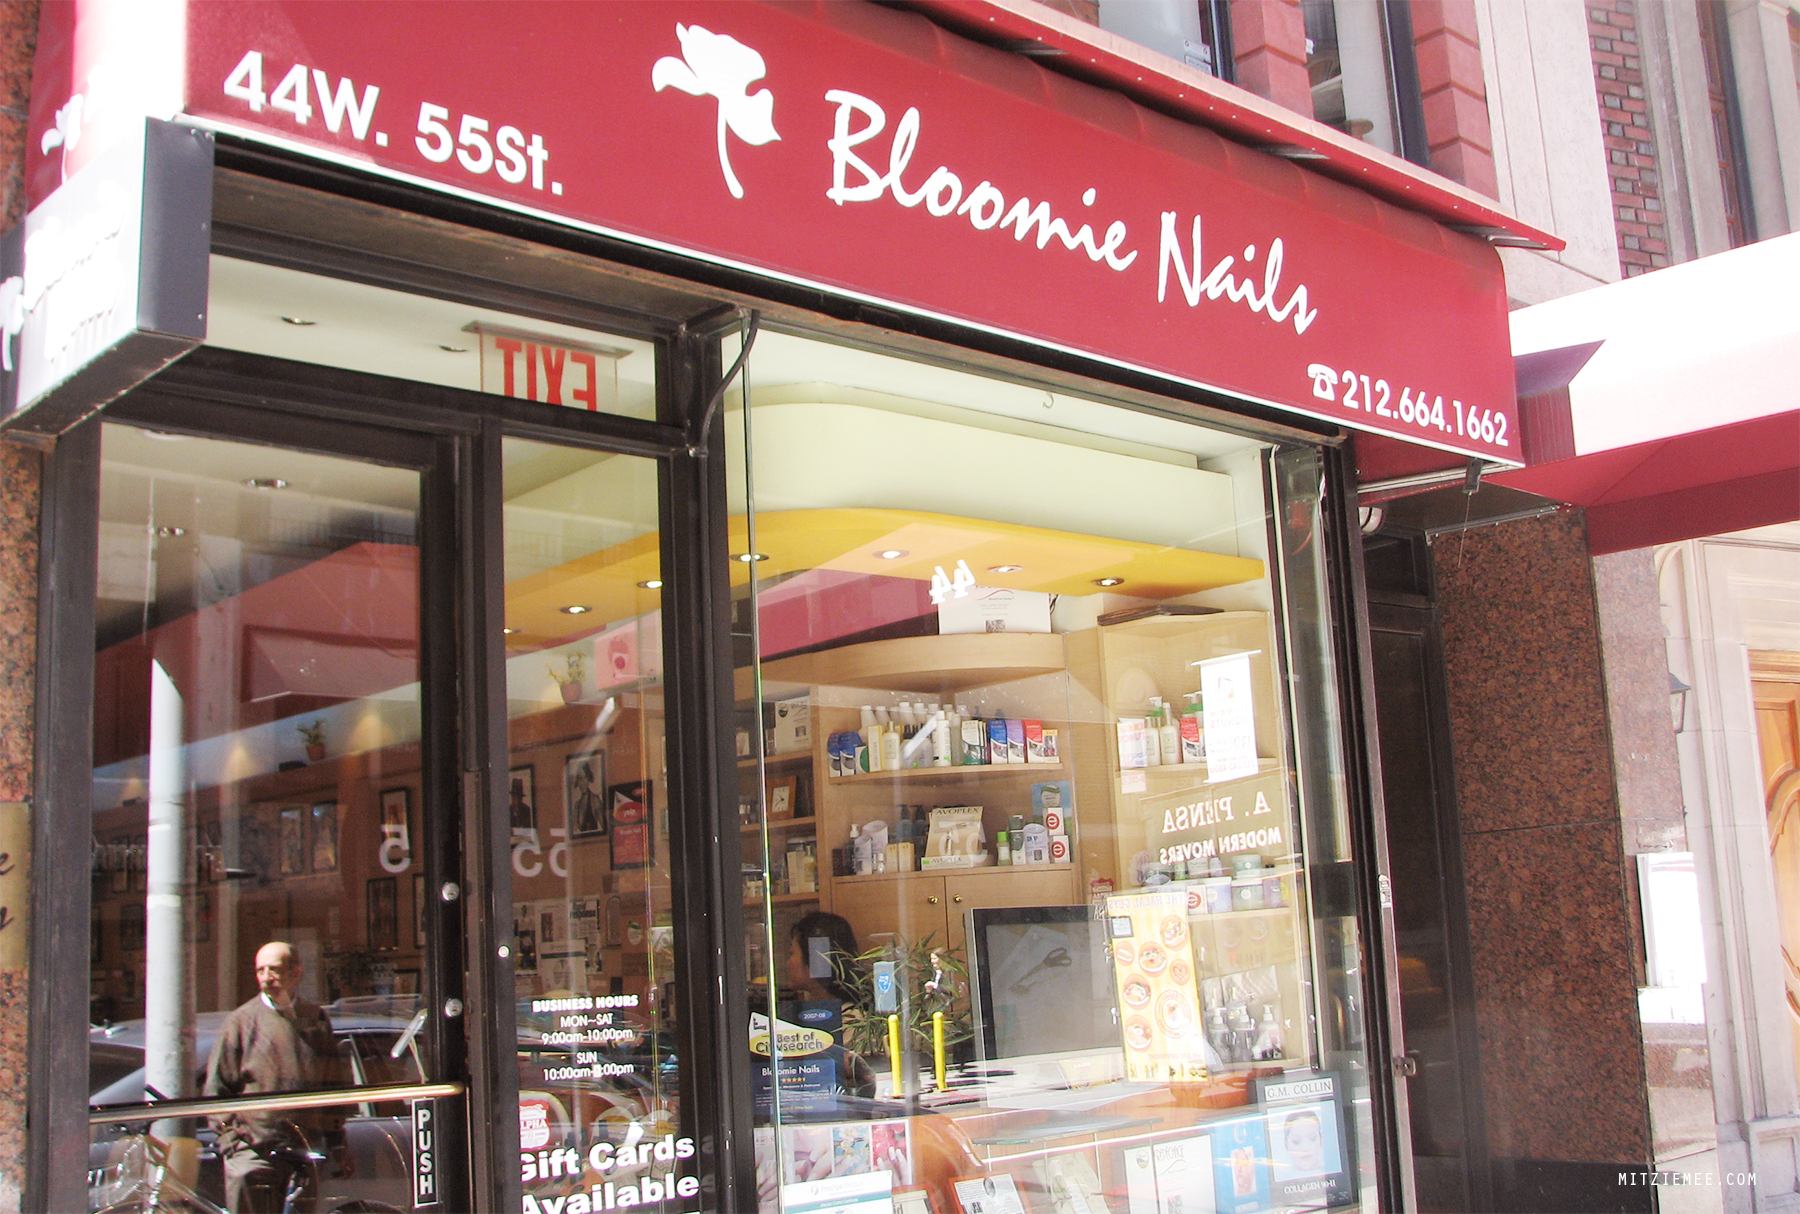 Bloomie Nails, New York